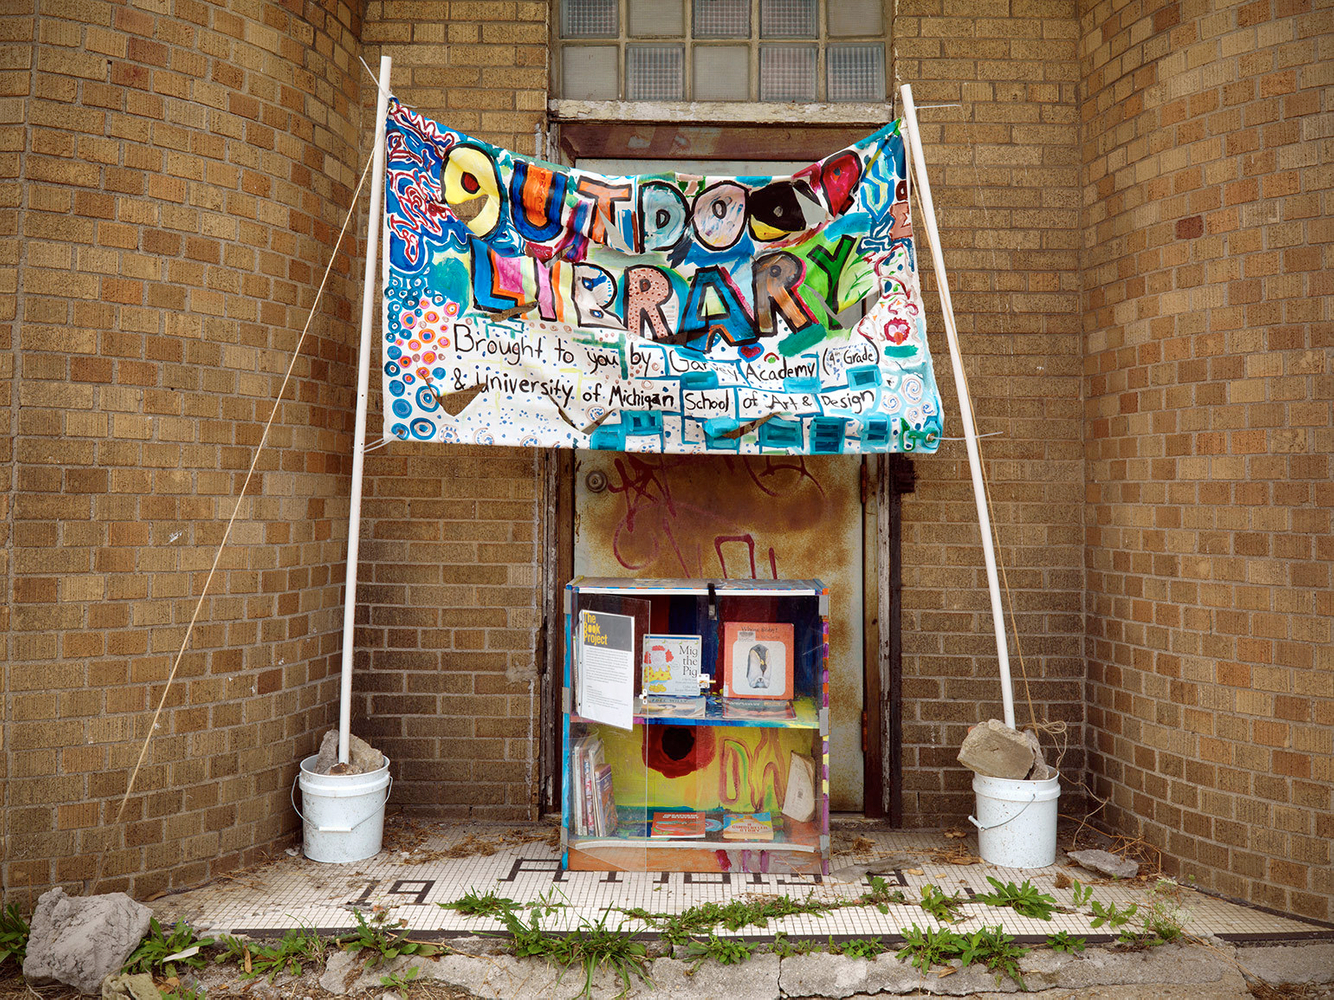 Outdoor Pop-Up Library, Free Books, Conant Street, Detroit 2012